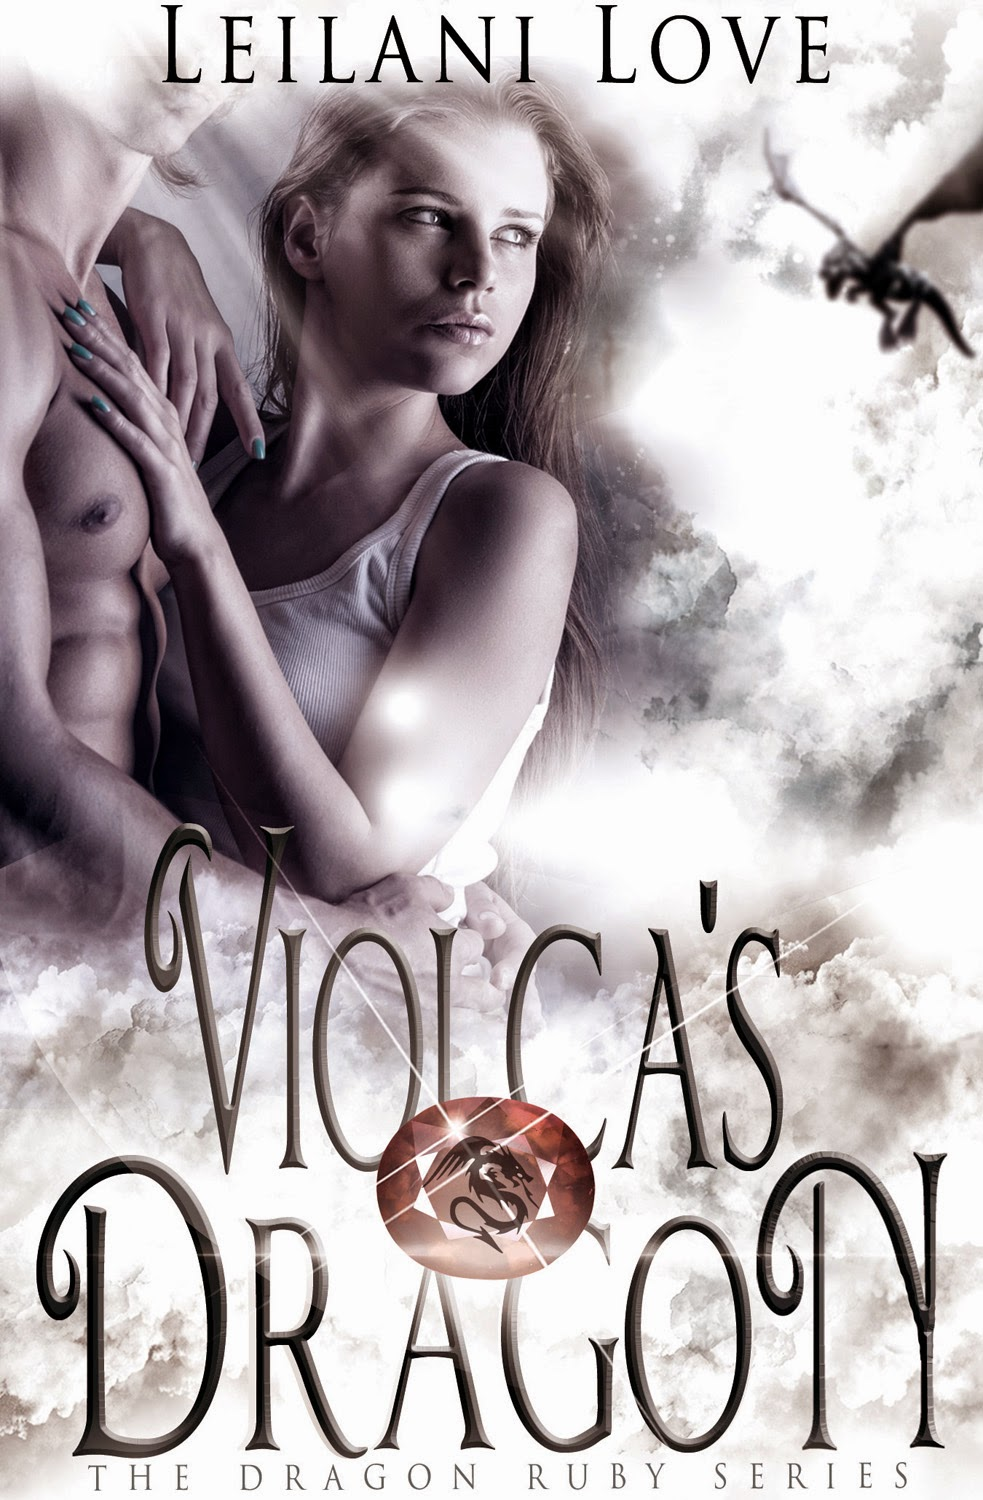 Excerpt from paranormal romance Violca's Dragon by Lailani Love